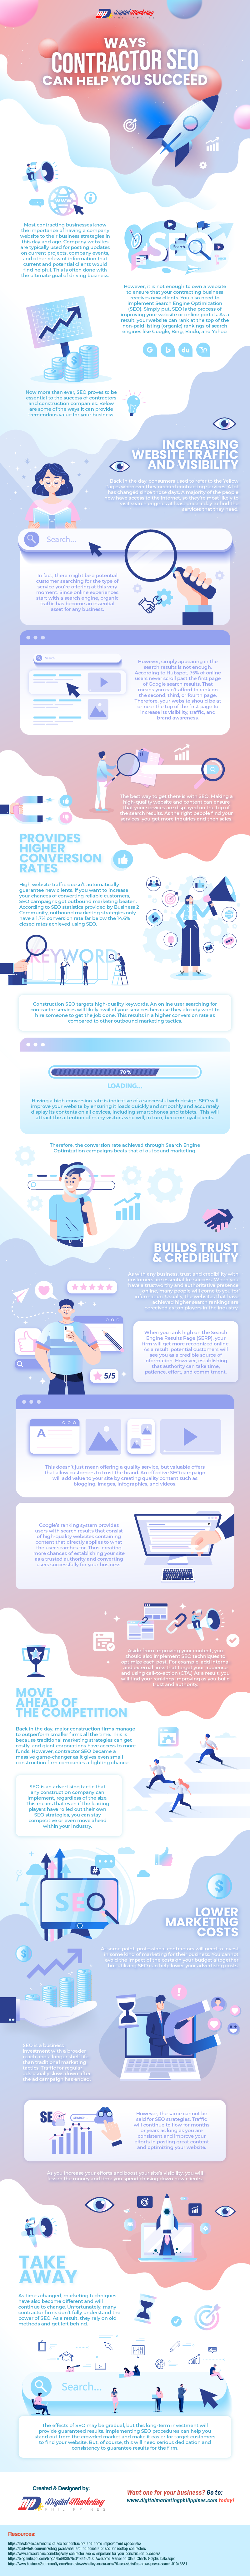 Ways Contractor SEO can Help You Succeed (Infographic)